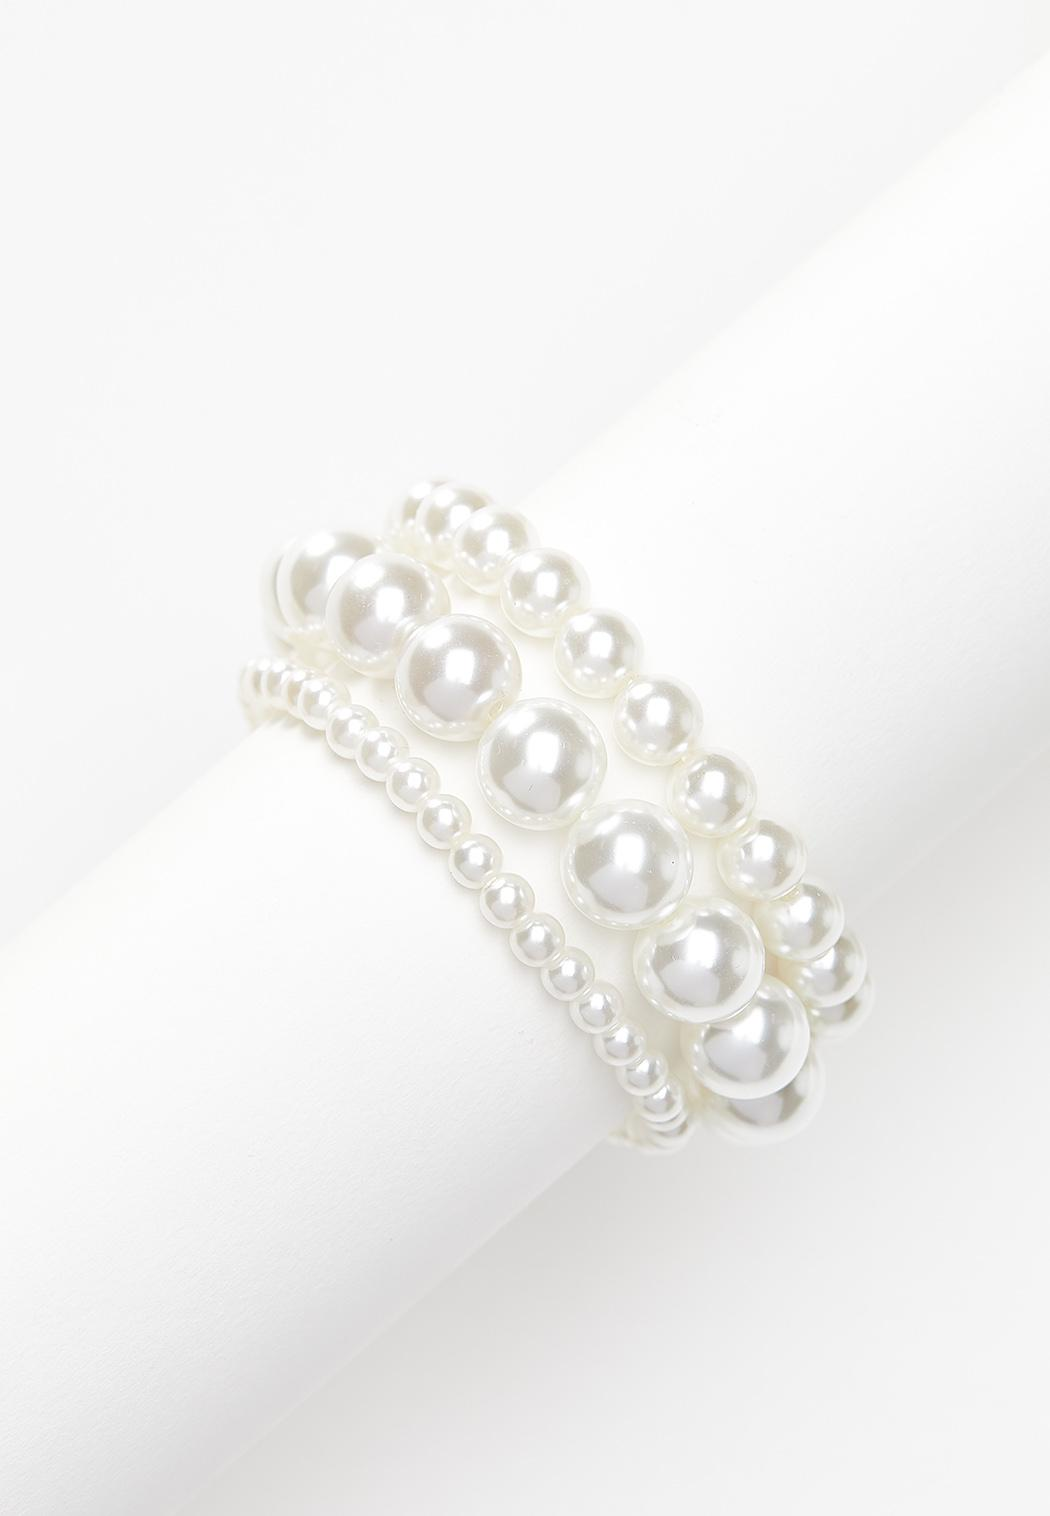 Acrylic Pearl Stretch Bracelet Set